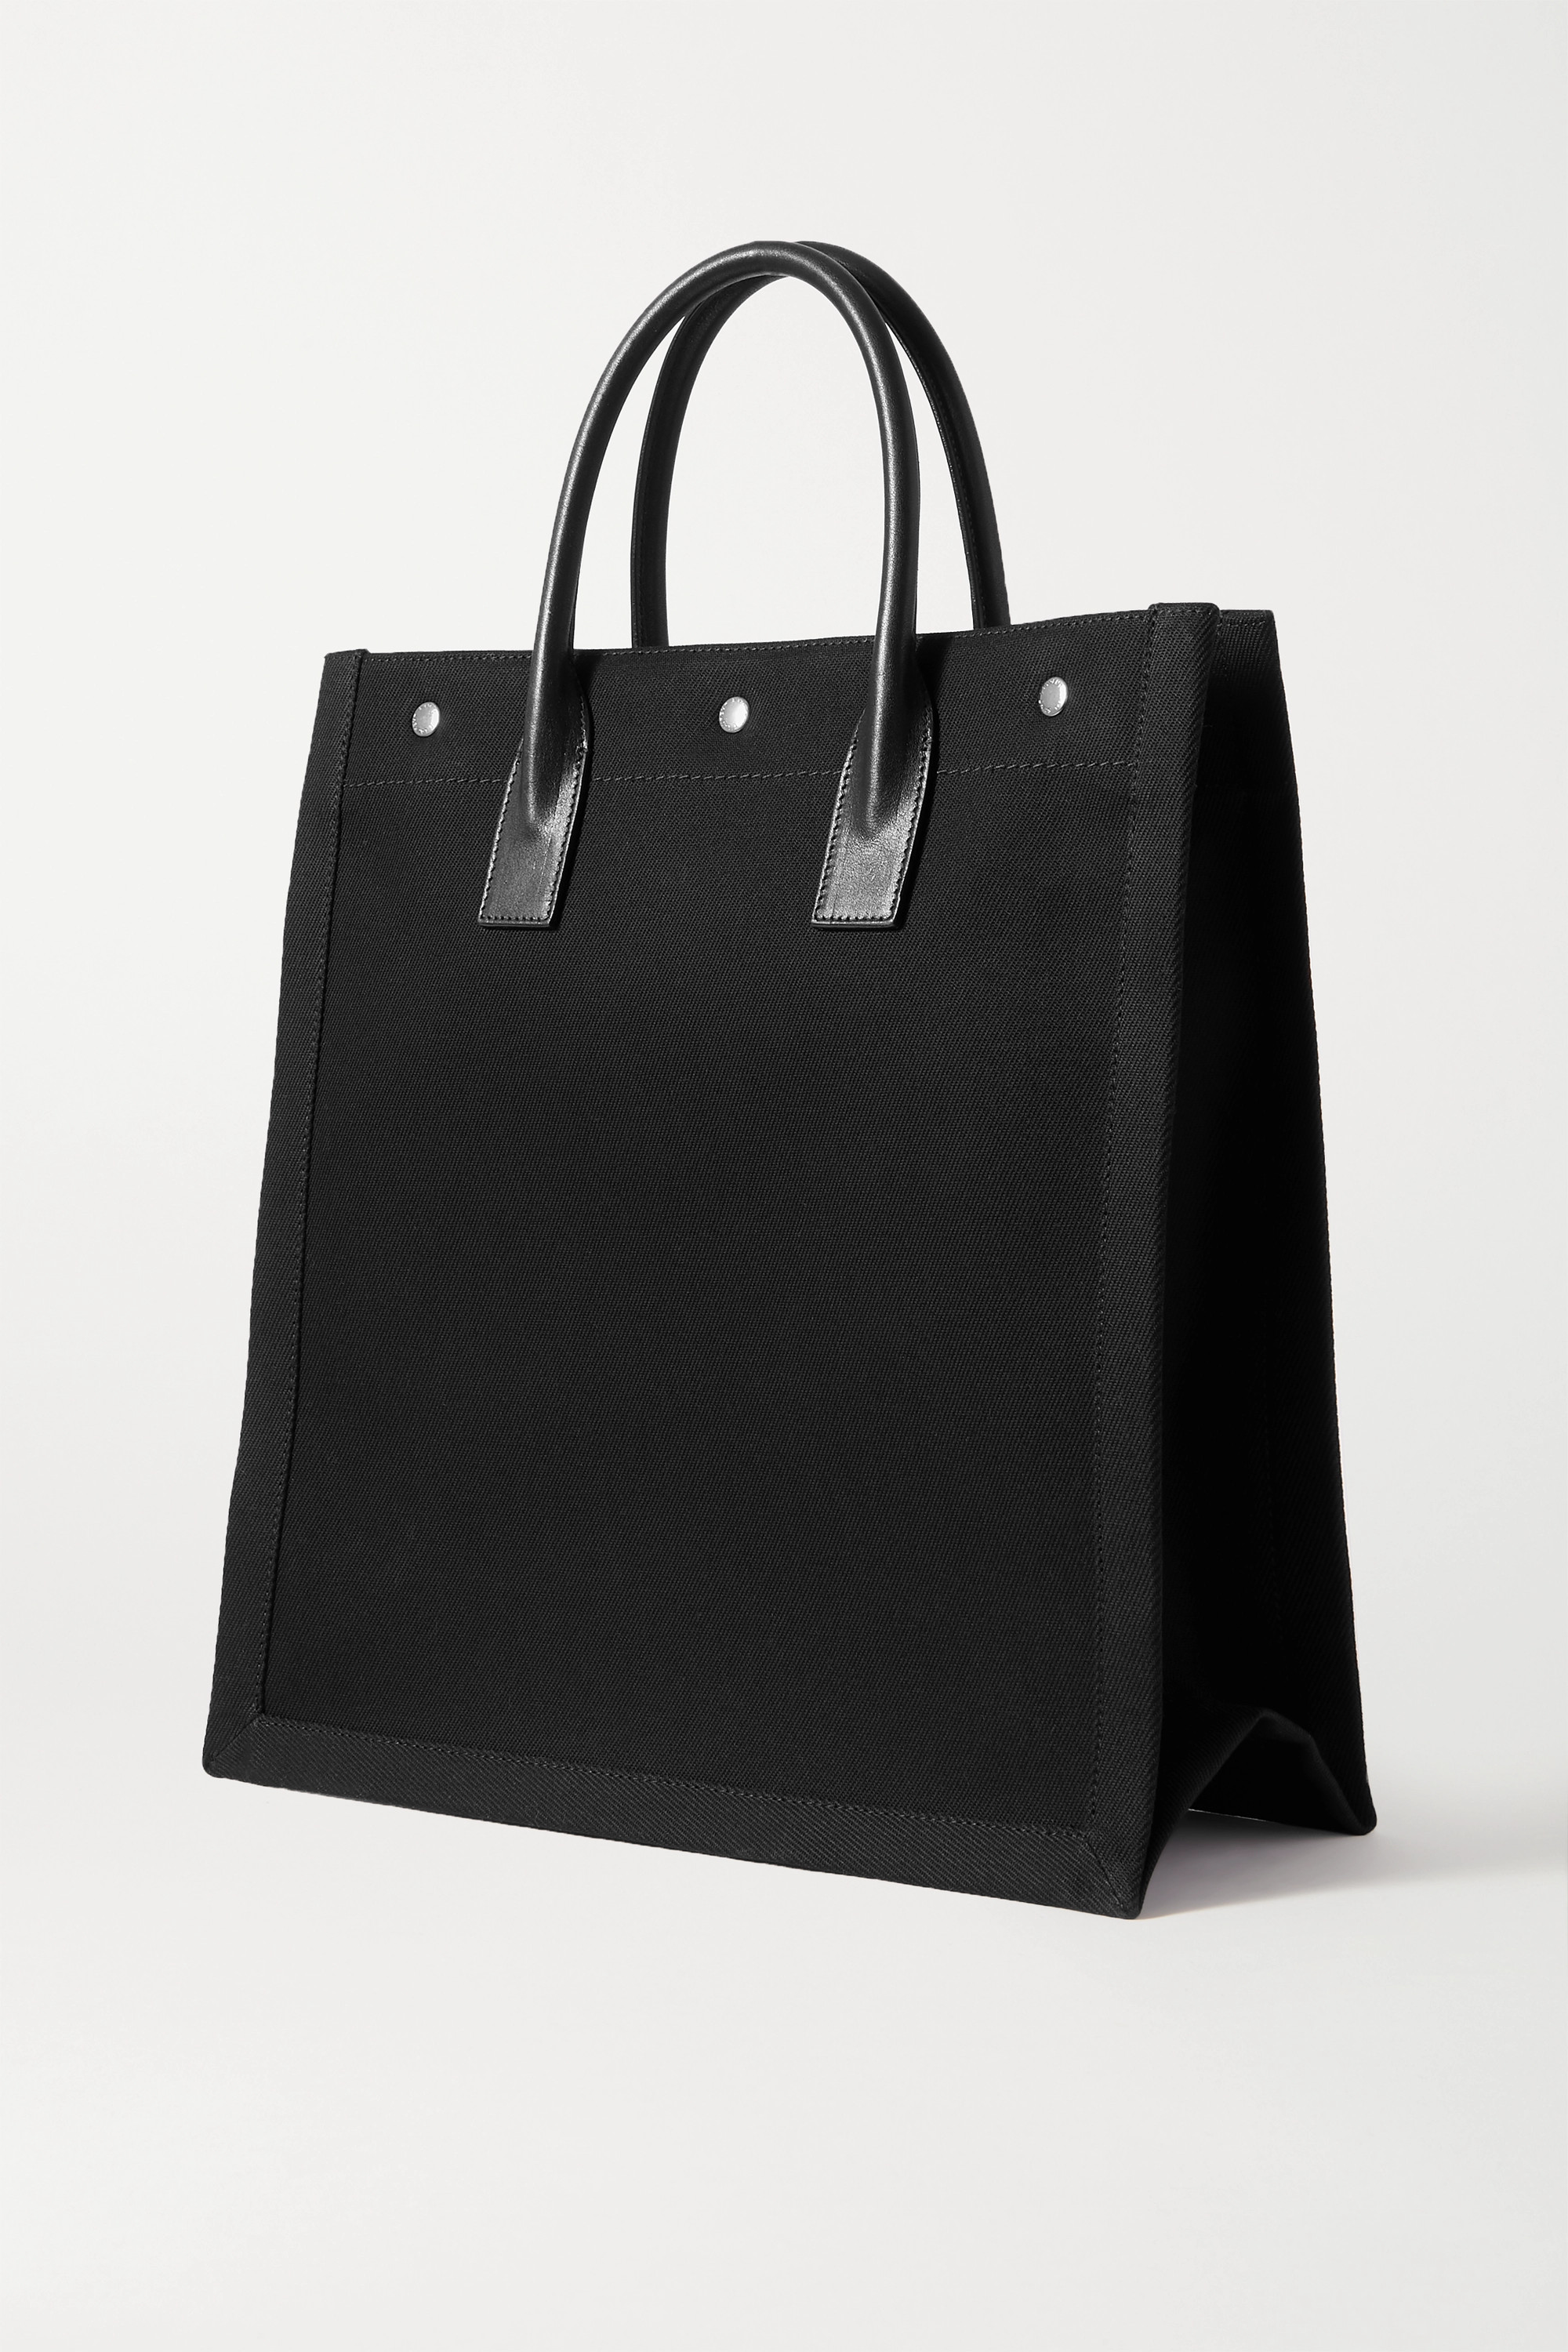 SAINT LAURENT Noe North South leather-trimmed printed canvas tote